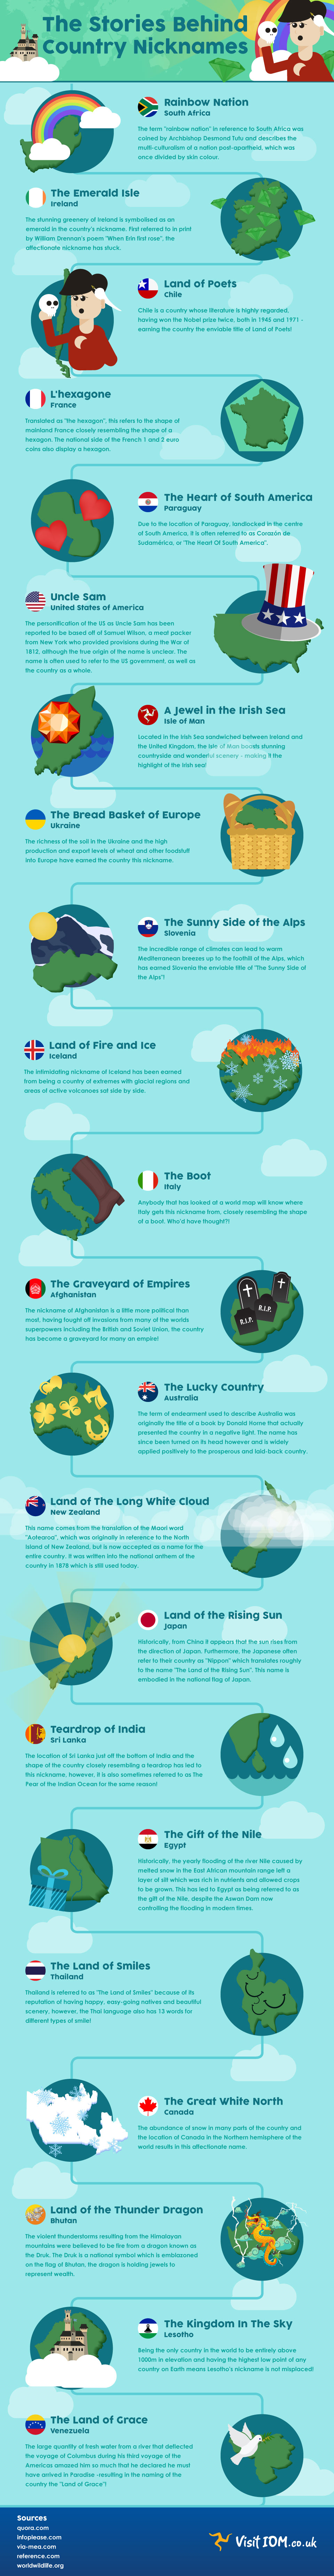 The Stories Behind Country Nicknames